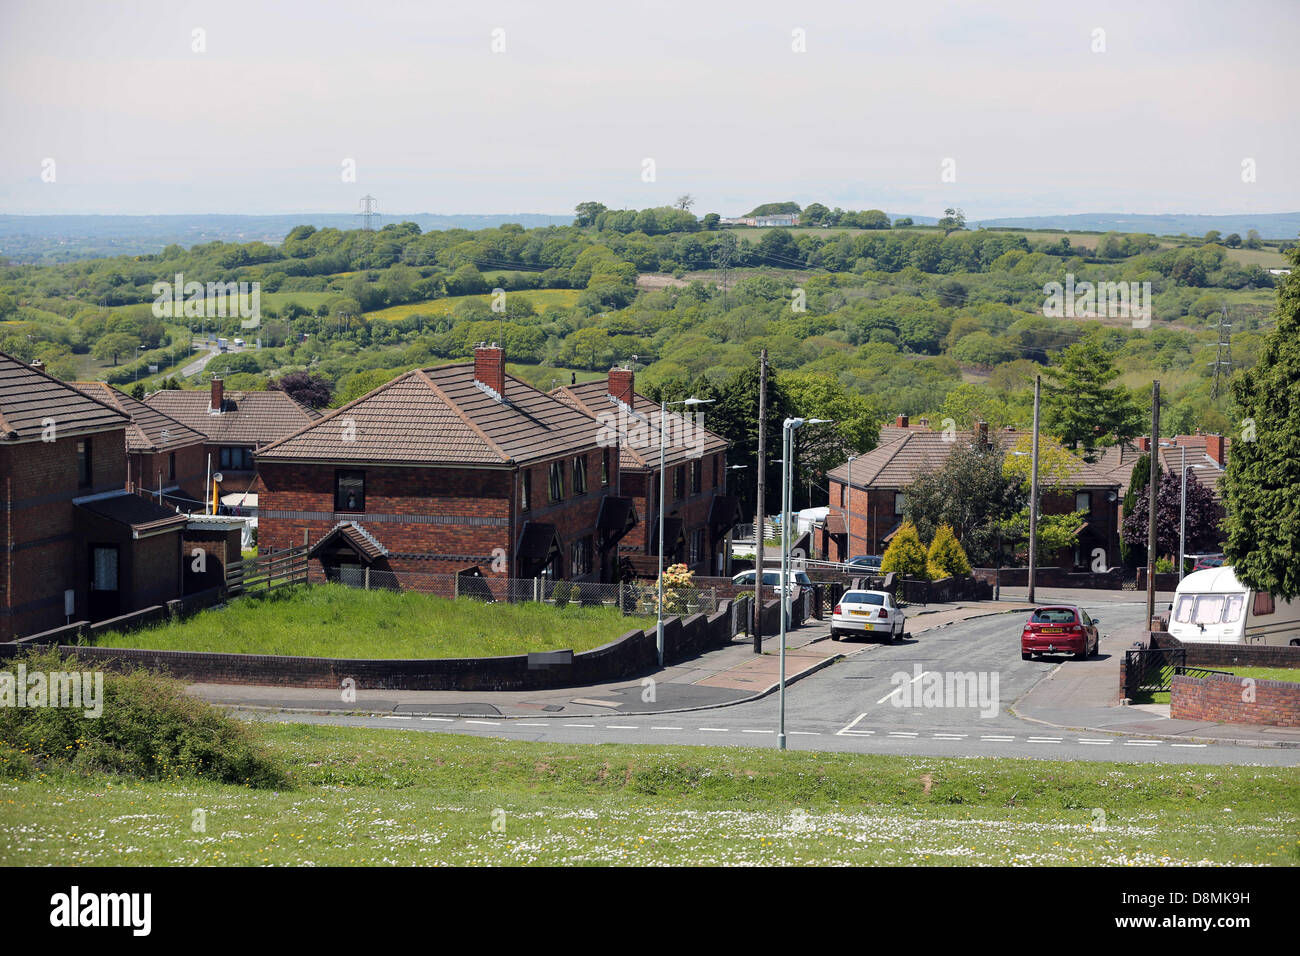 Swansea, south Wales, UK. Wed 29 May 2013  Pictured: Houses in the area of Swansea that suffered a power cut when Stock Photo